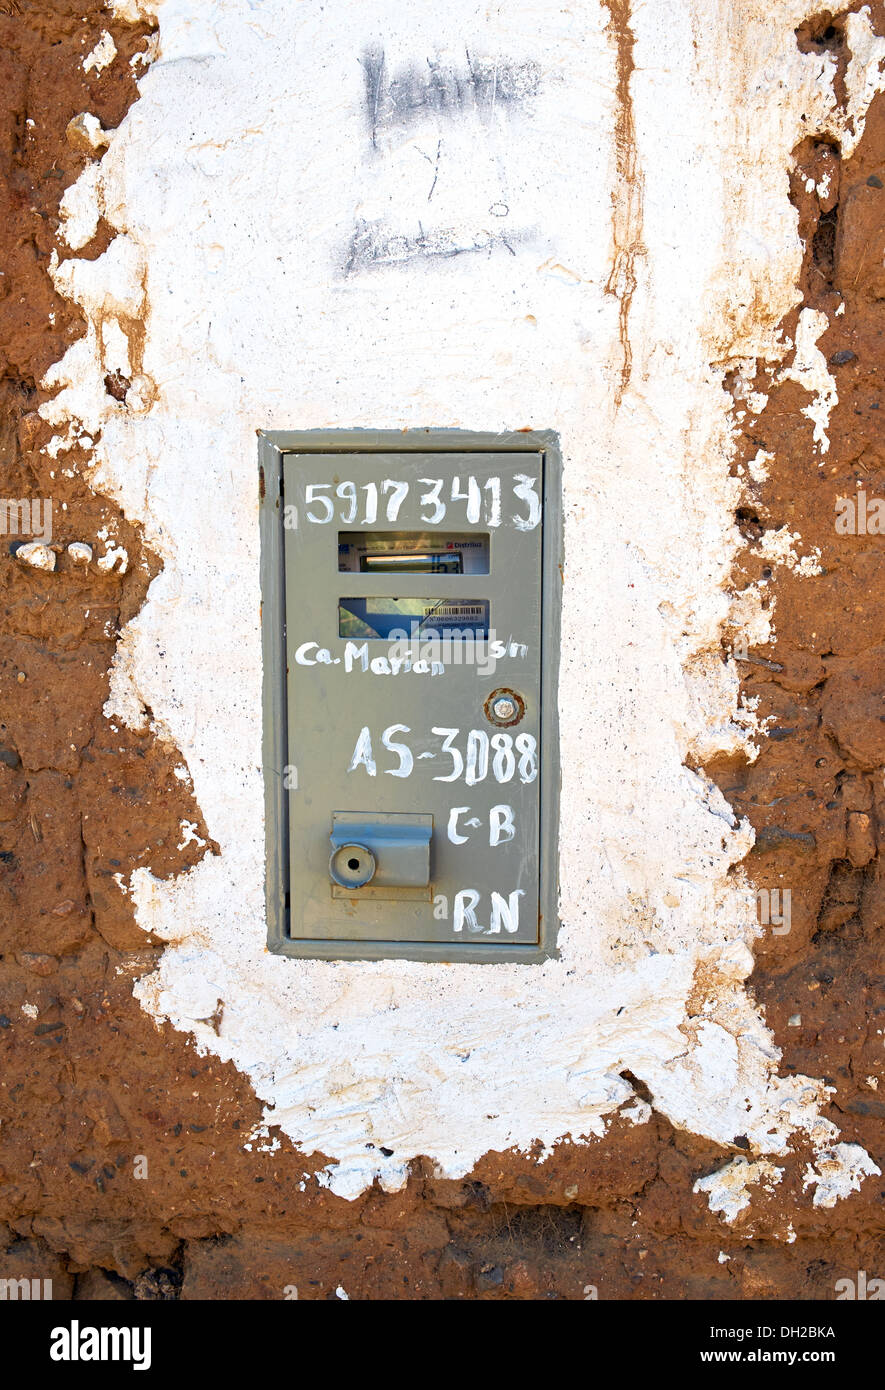 An electric meter on an adobe building in the Peruvian Andes, South America. - Stock Image